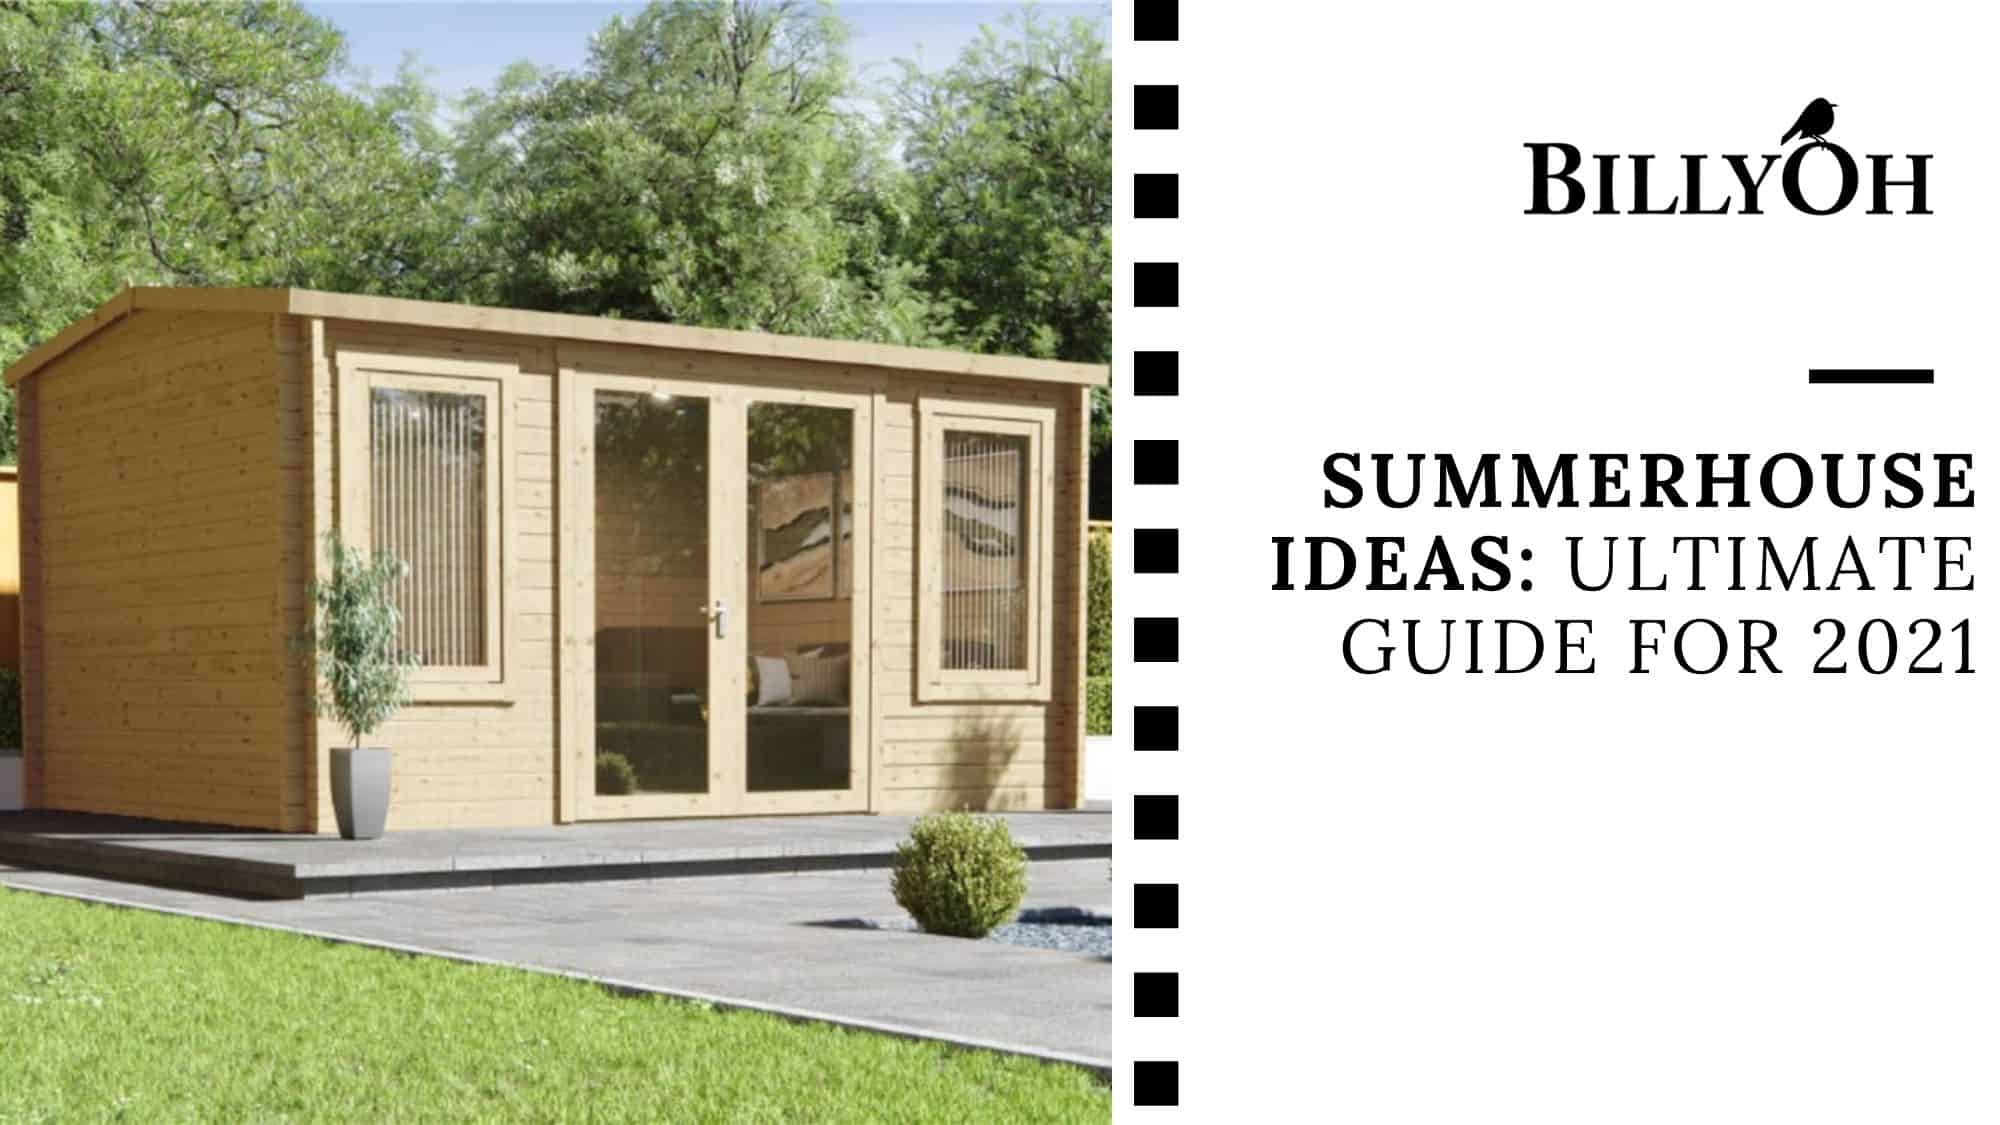 summerhouse ideas guide for 2021 with BillyOh logo on white cartoon film reel banner with timber log cabin pent roof summer house